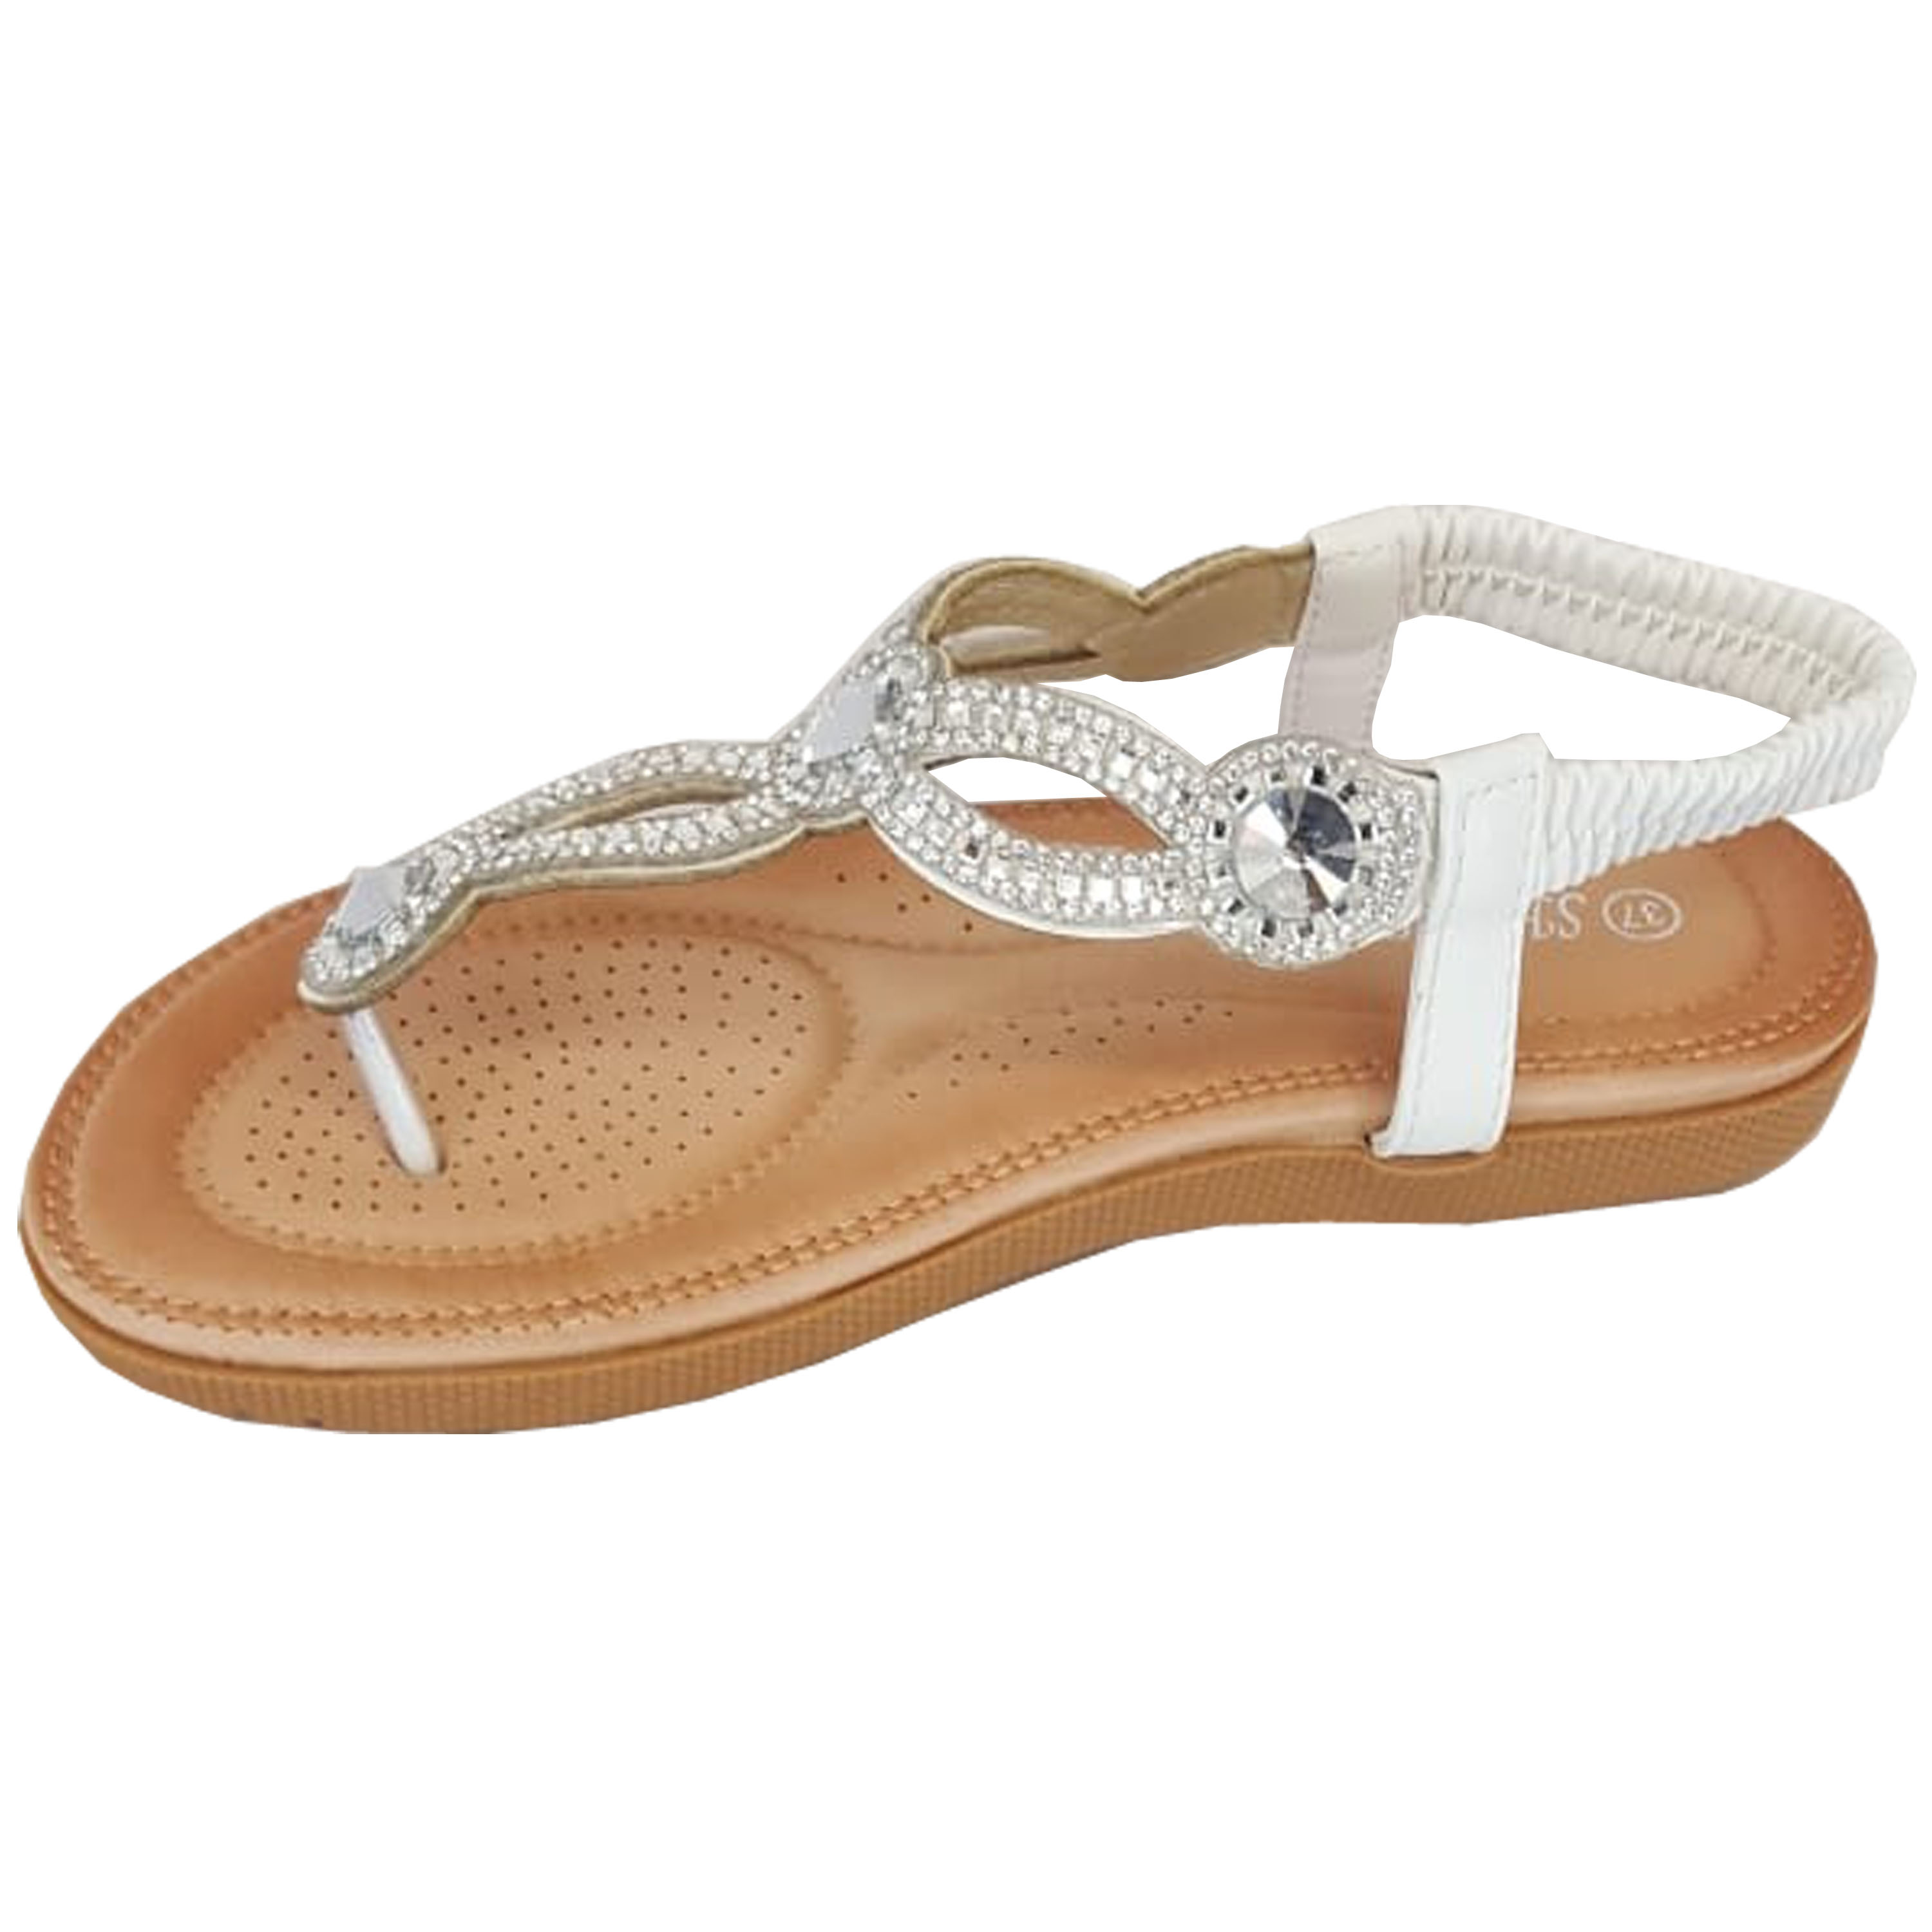 Ladies-Sandals-Womens-Diamante-Sling-Back-Open-Toe-Post-Shoes-Fashion-Summer-New thumbnail 20